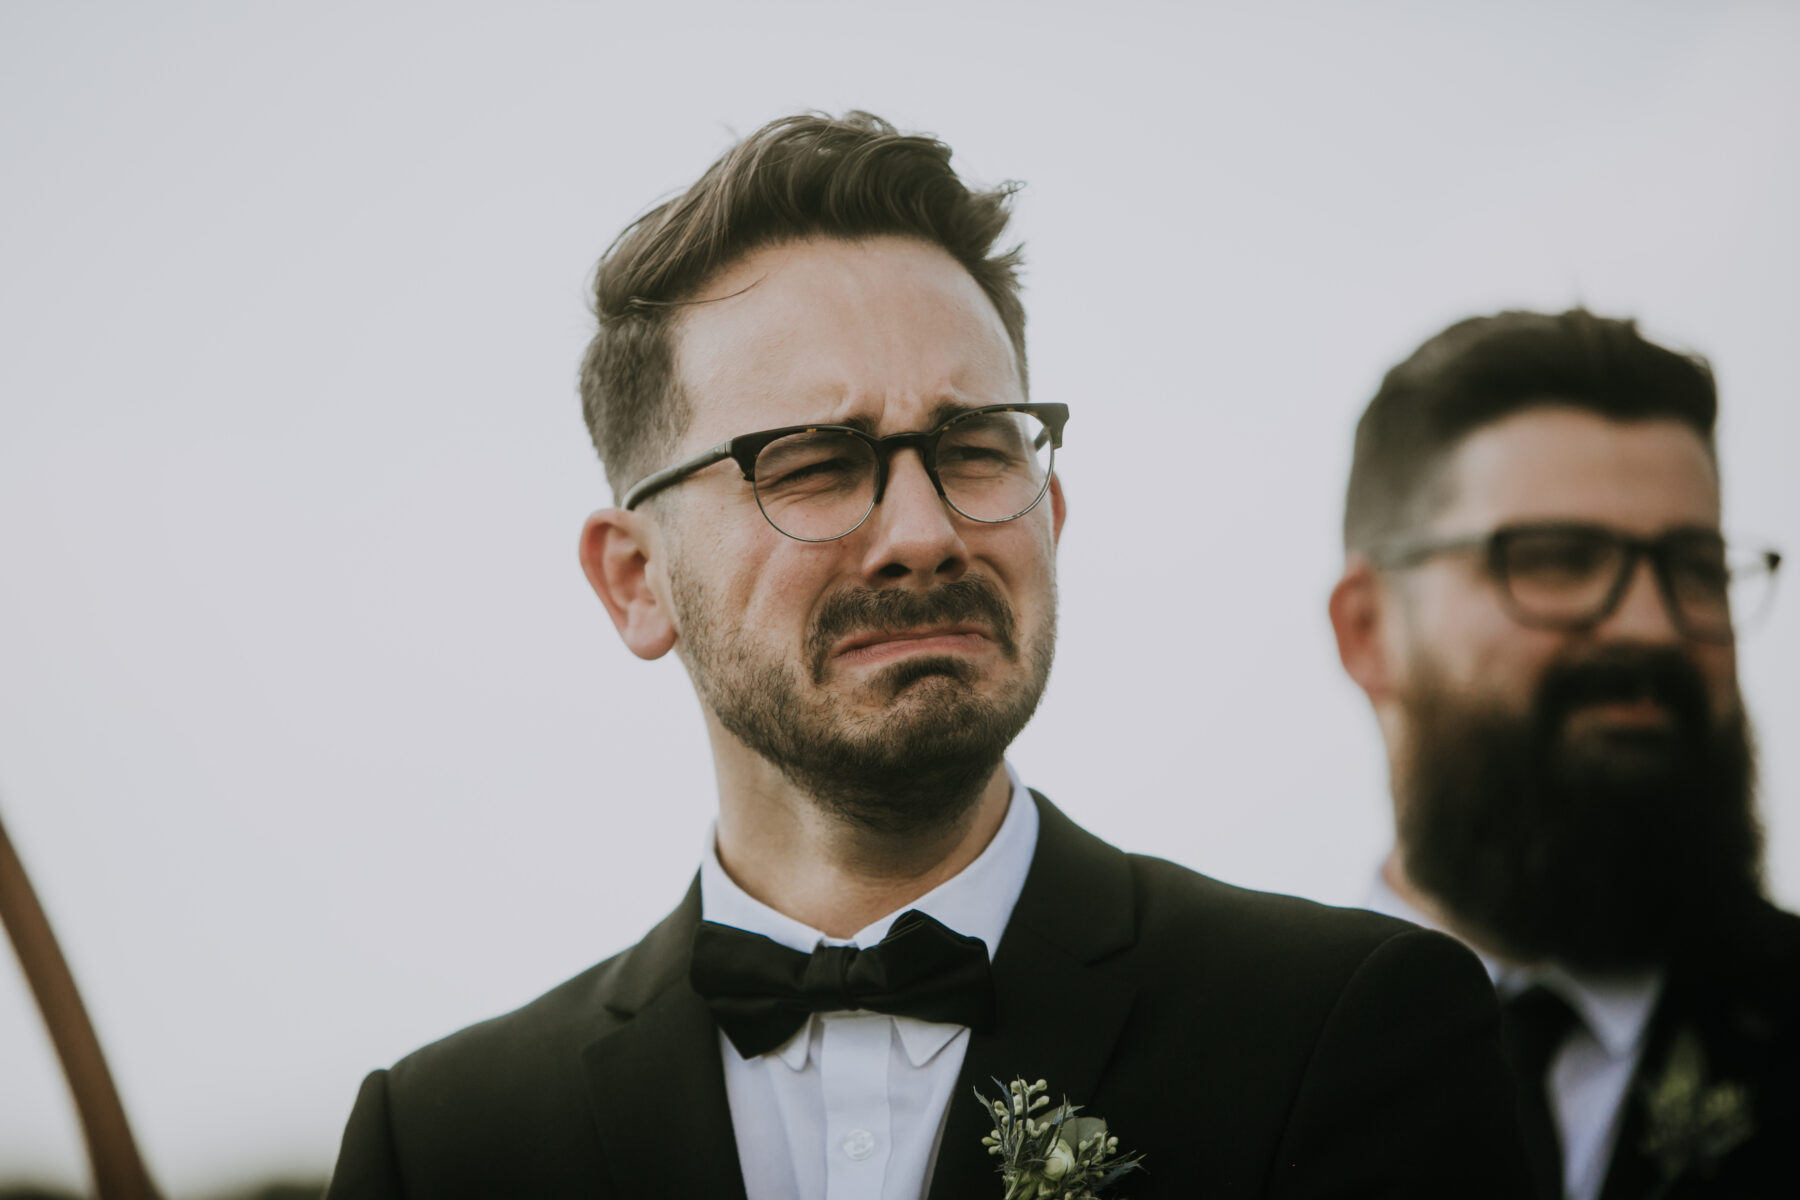 Grooms reaction to bride walking down the aisle: Nashville Wedding with Beautiful Views by Teale Photography featured on Nashville Bride Guide